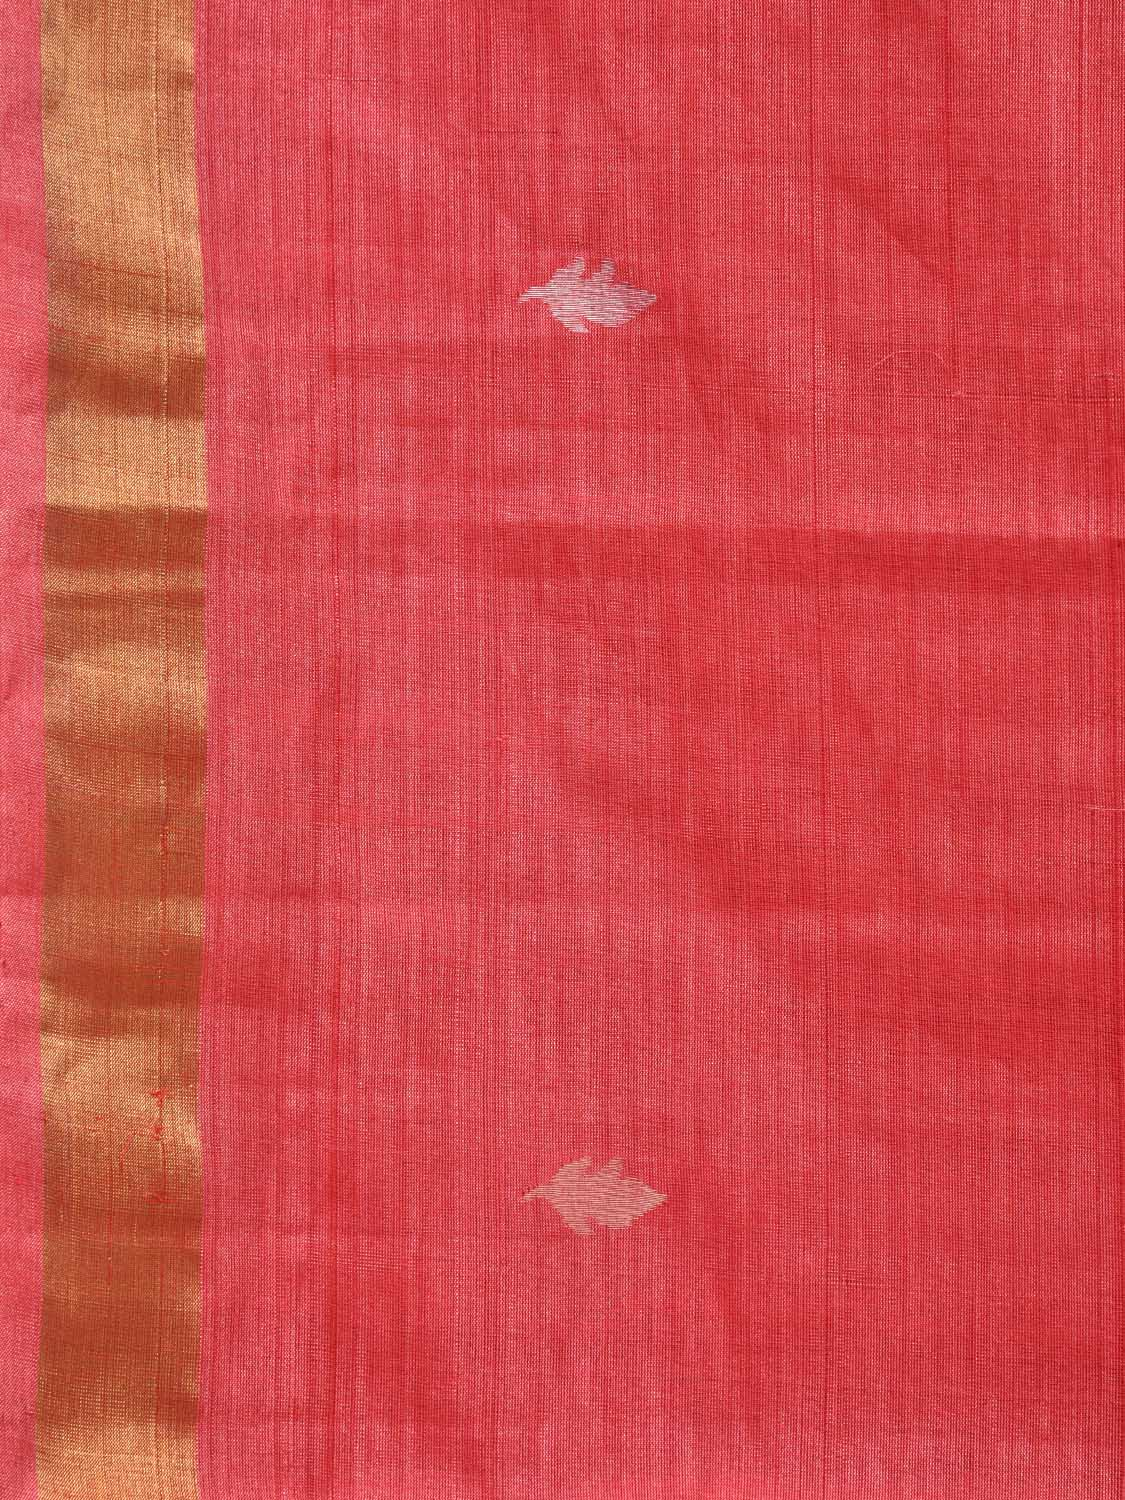 Peach Uppada Tussar Cotton Handloom Saree with Grill Pallu Design u1606